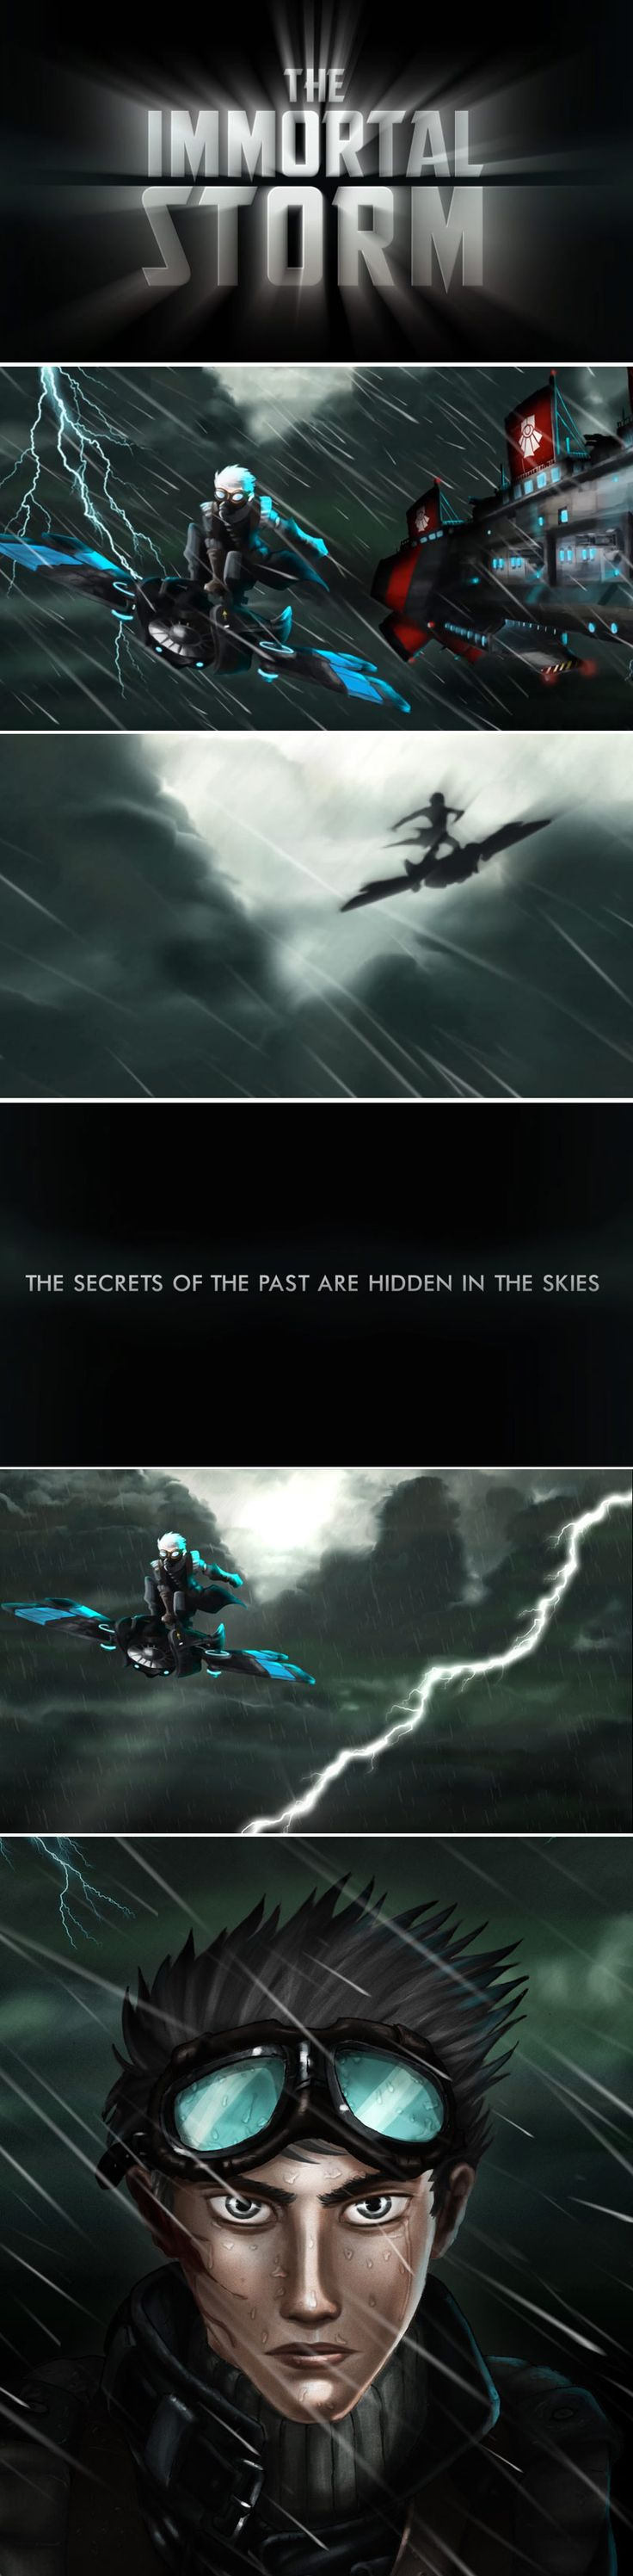 The Immortal Storm illustrations and trailer images.